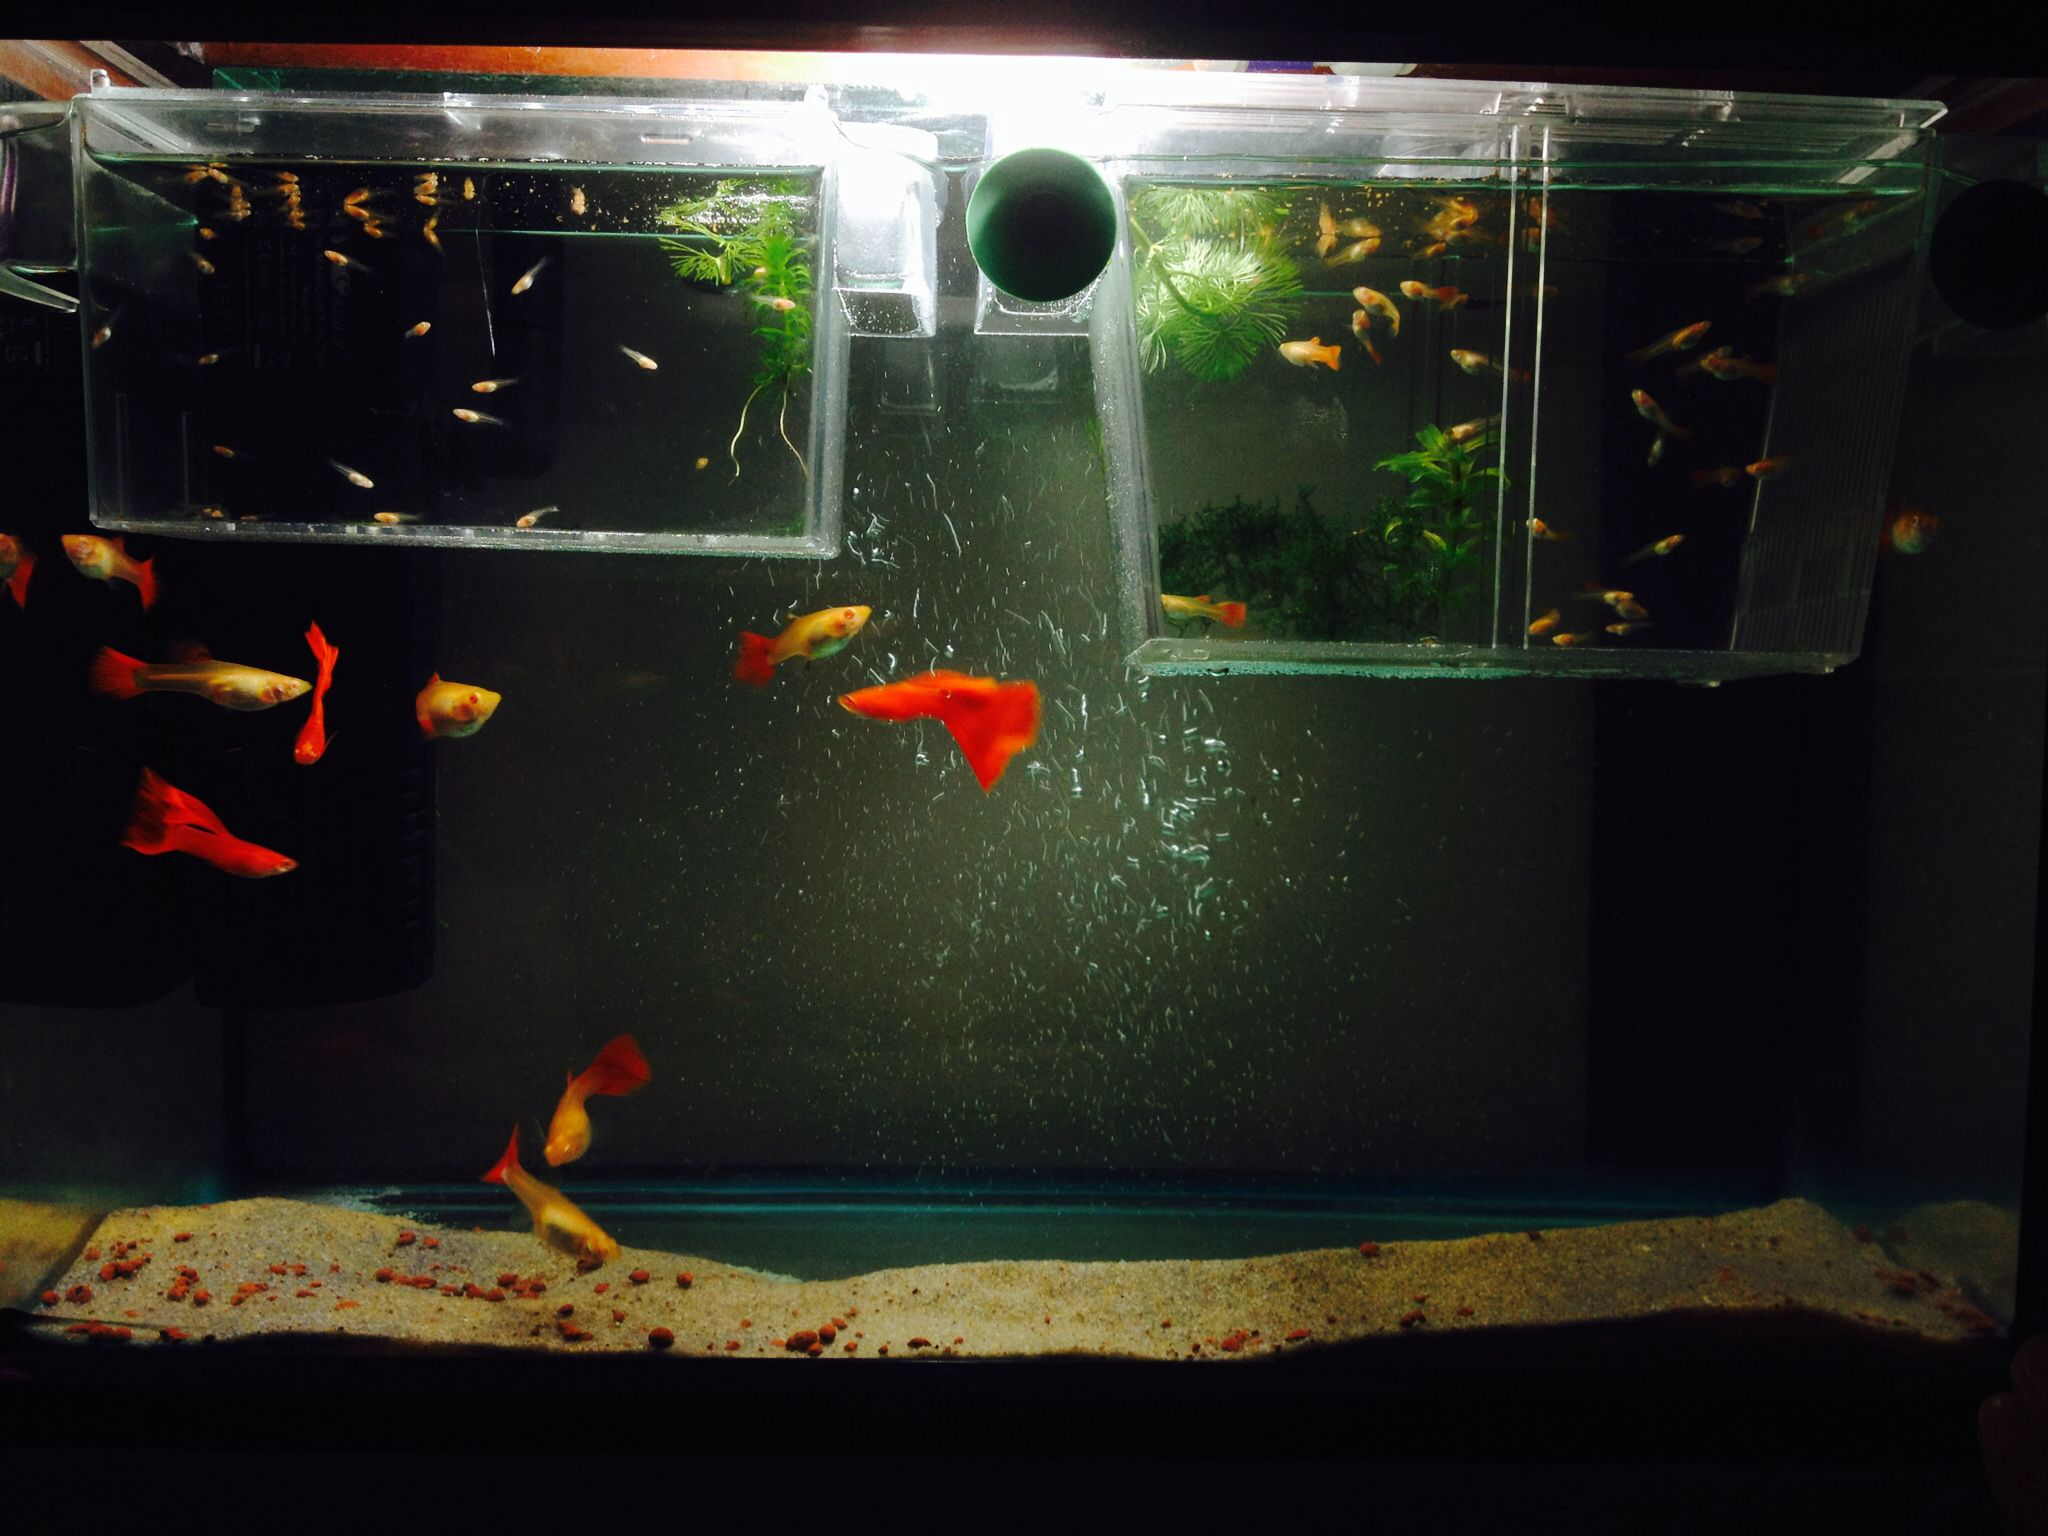 Fish xbox aquarium - Guppy Fish Tank With Adults And Babies Oh How I Wish I Could Have